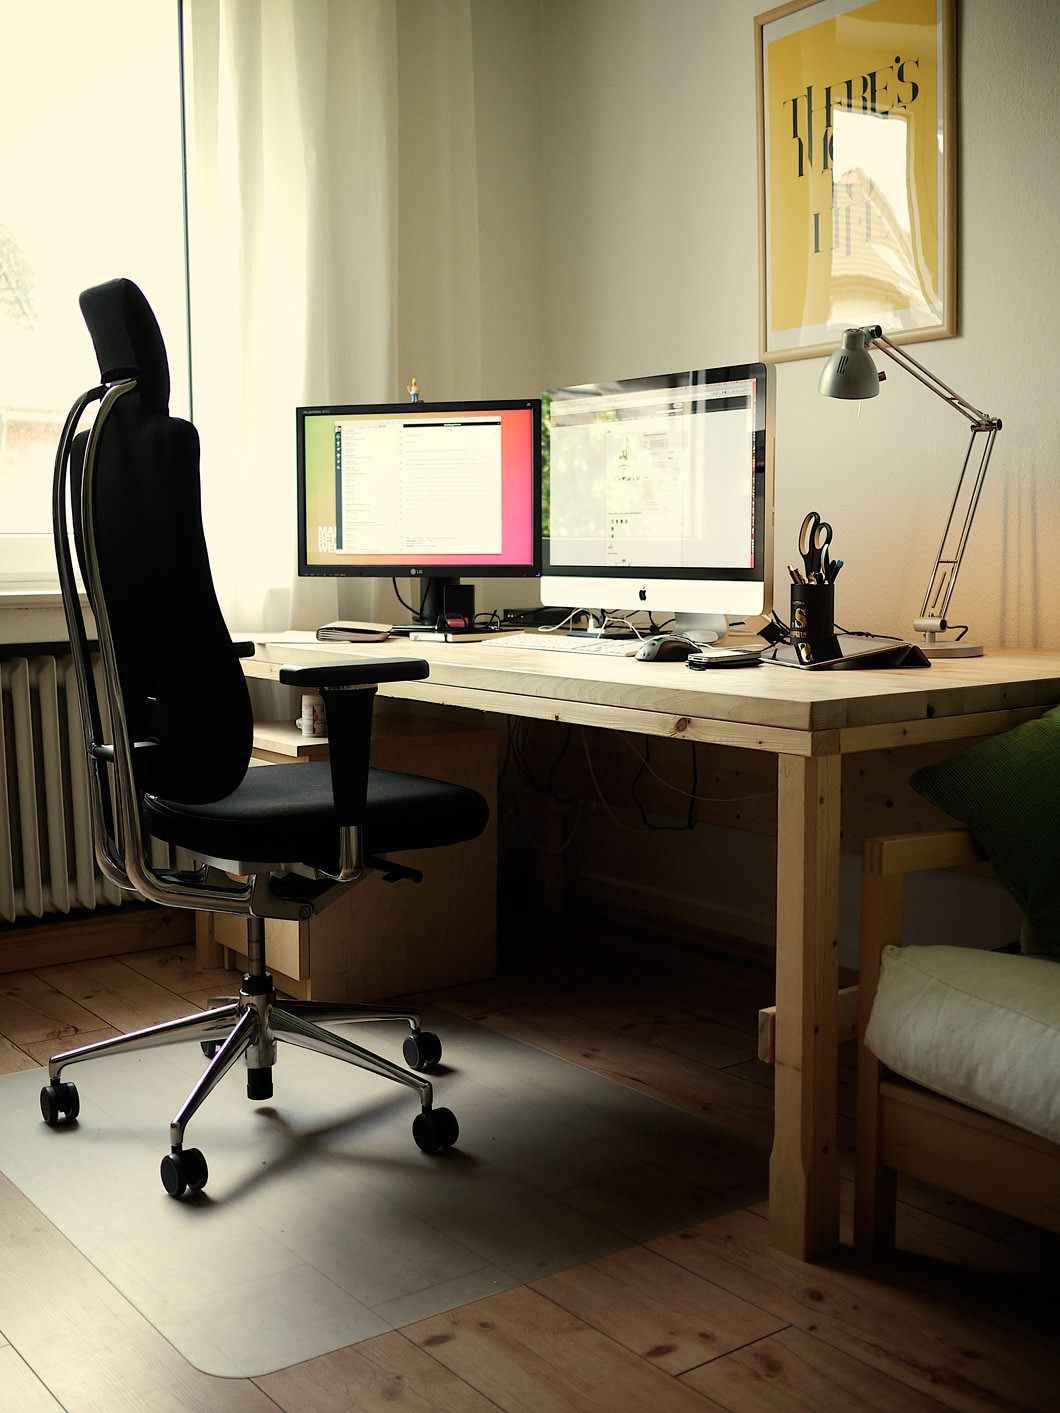 50 Home Office Ideas Working From Your Home With Your Style Home Office Design Office Workspace Minimalist Home